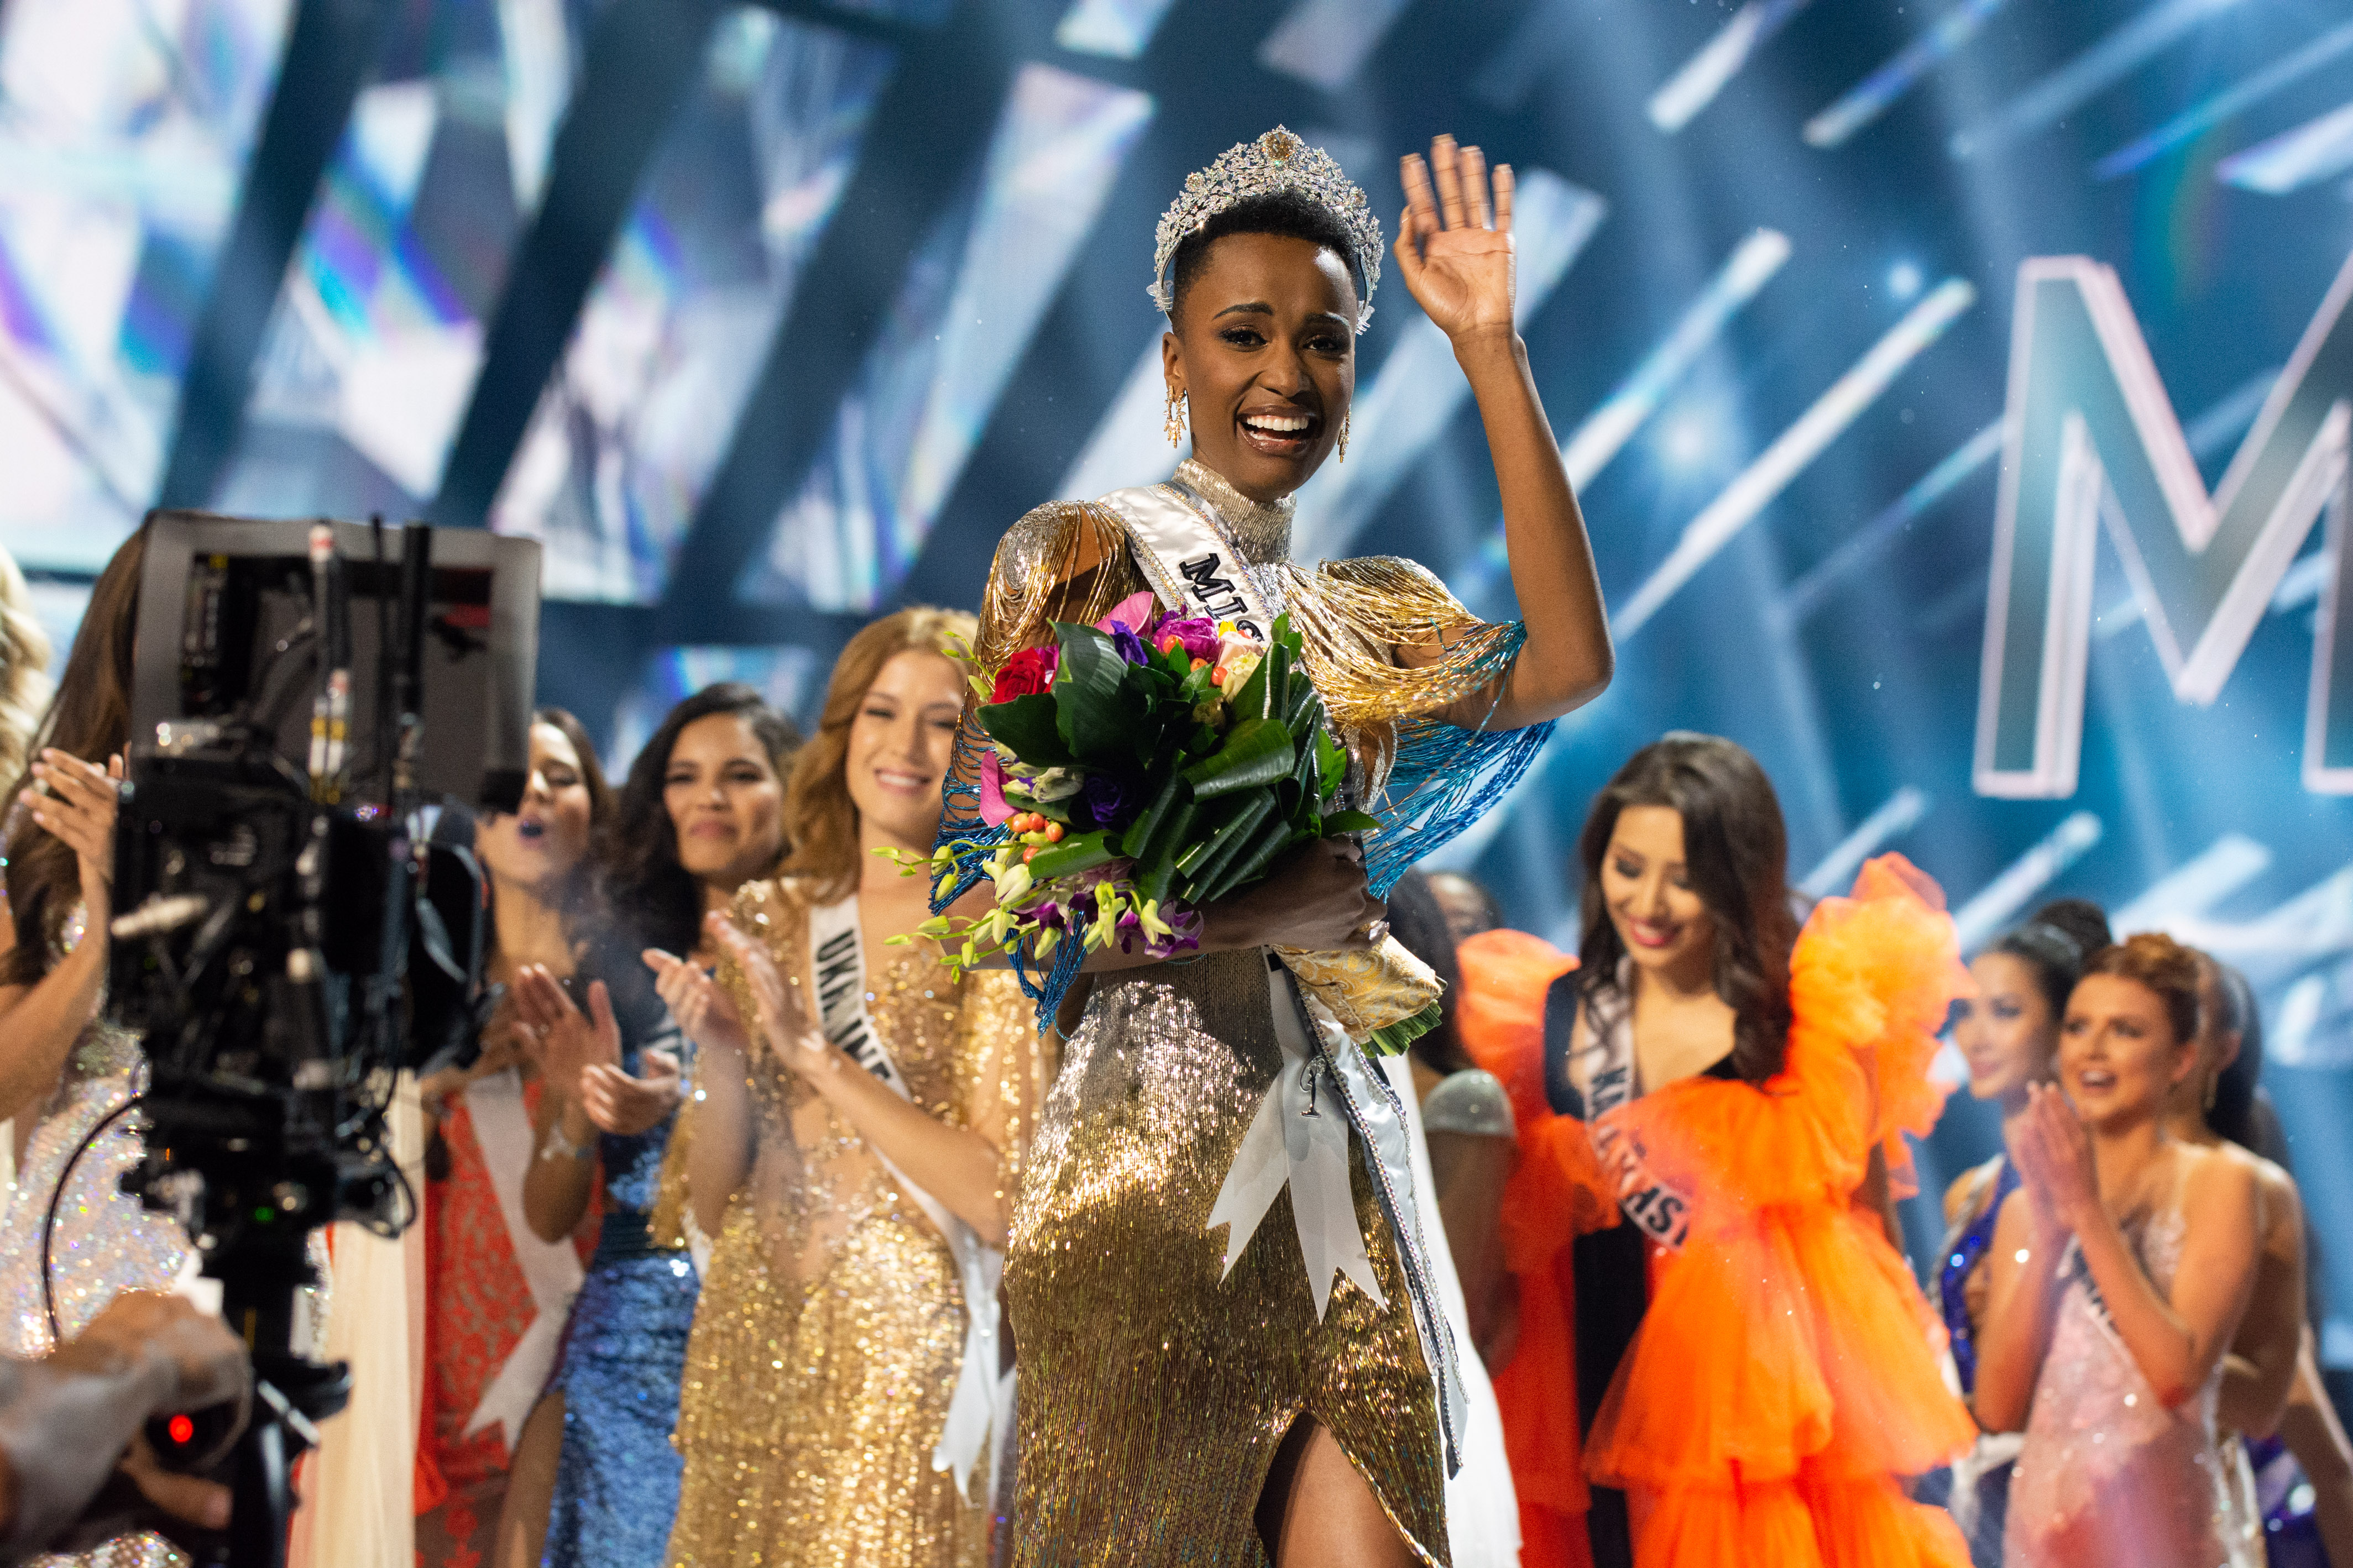 NEW QUEEN. Zozibini Tunzi, Miss South Africa 2019, is crowned Miss Universe on December 9, 2019 in Atlanta. Photo from the Miss Universe Organization.